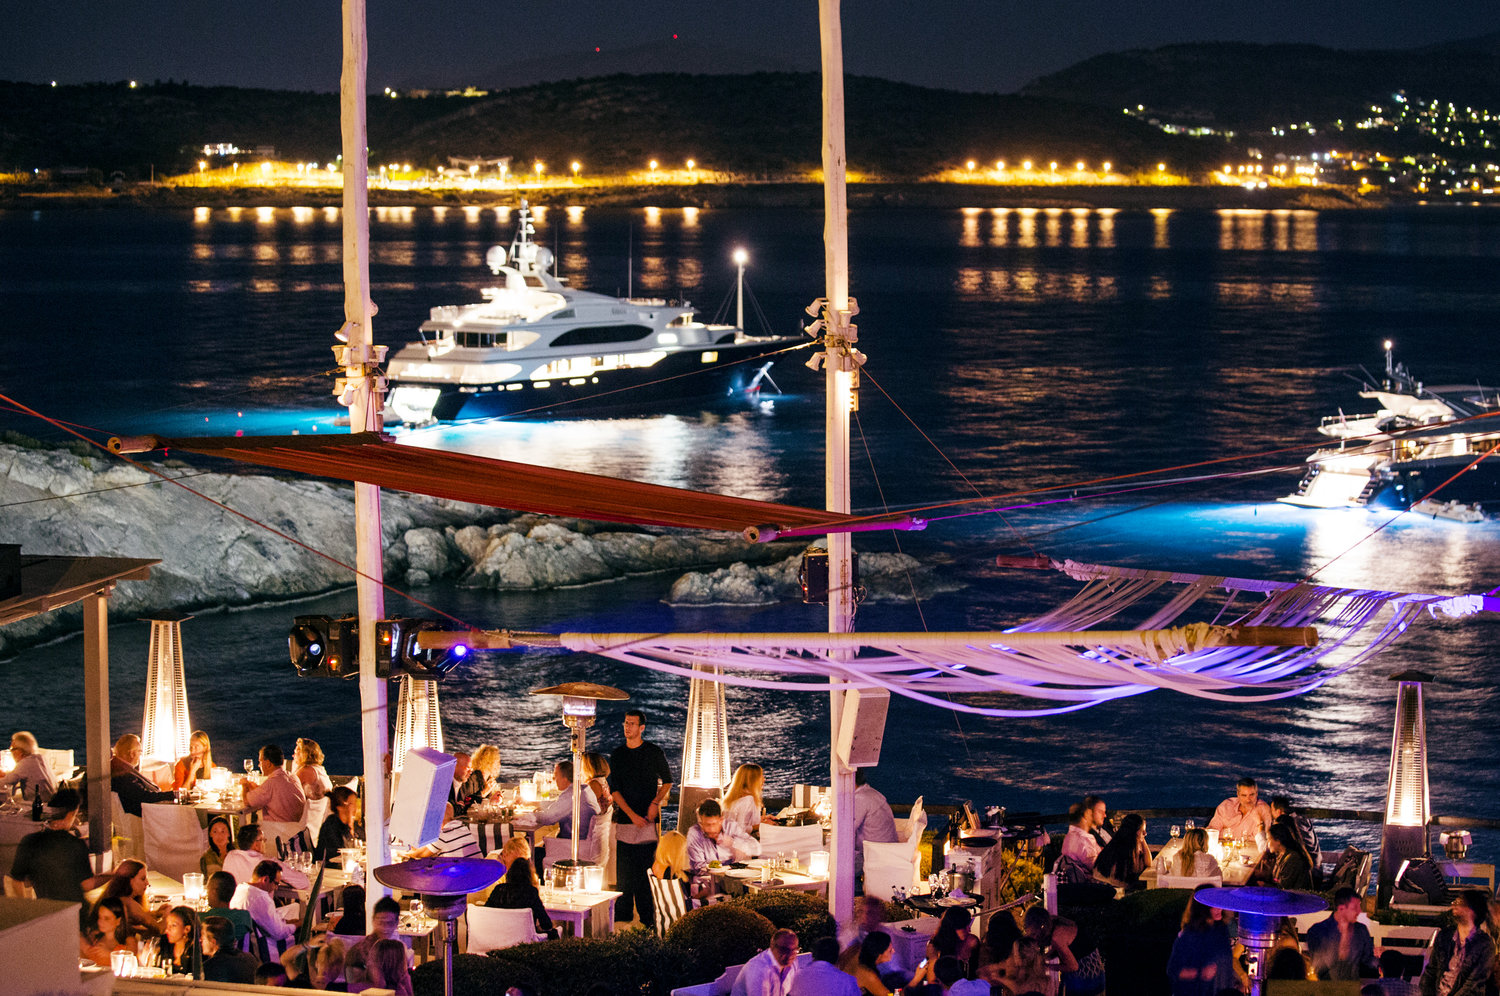 athens nightlife: the best spots to party in athens this season